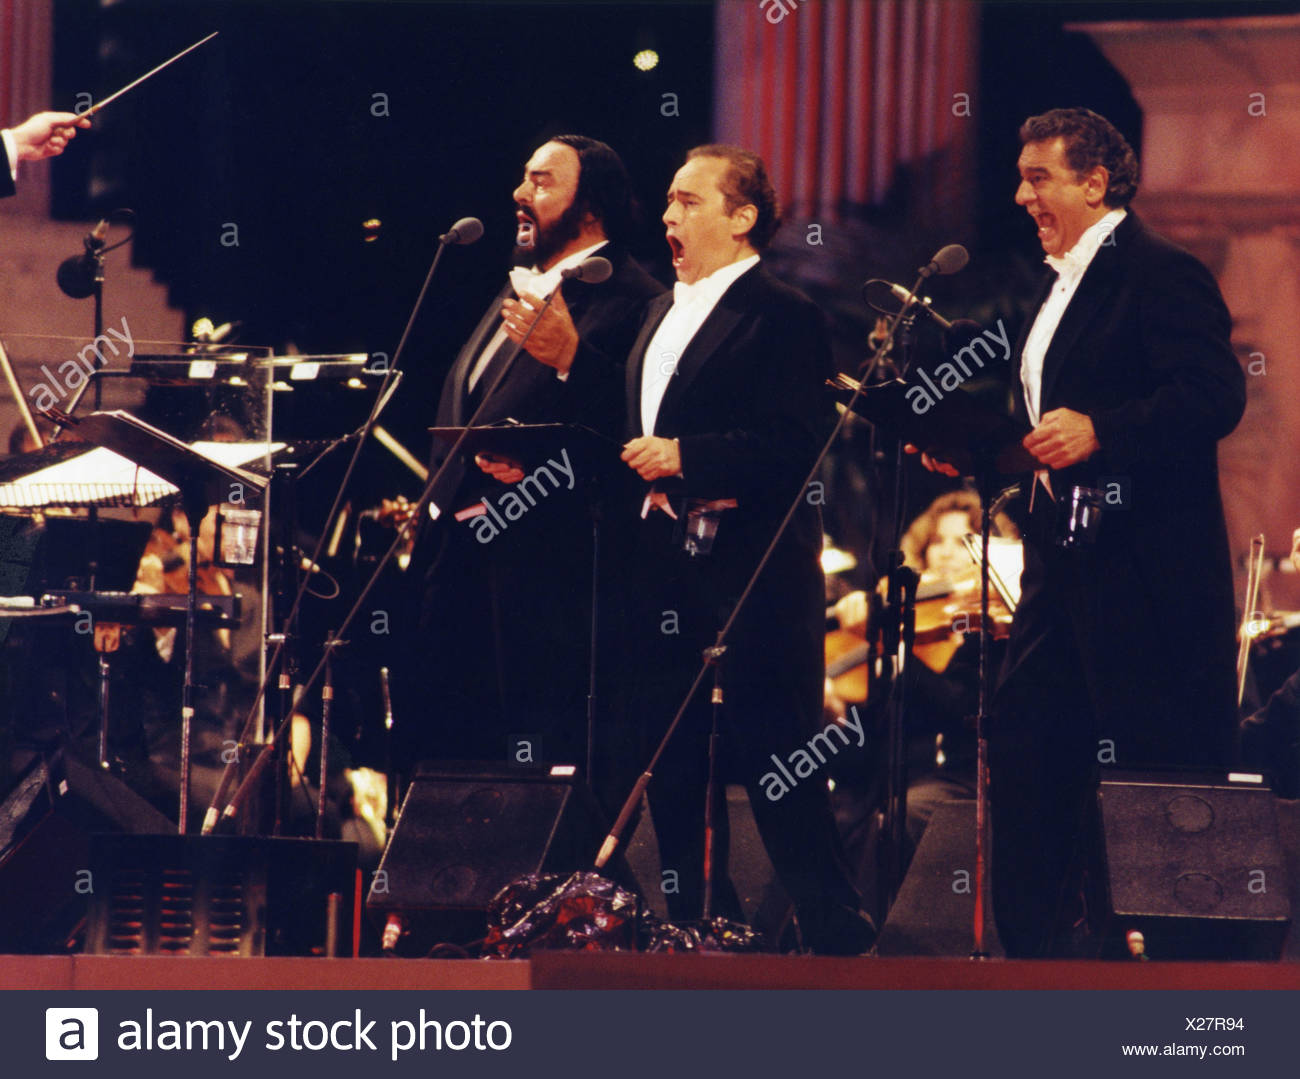 Pavarotti, Luciano, 12.10.1935 - 6.9.2007, Italian musician / artist, singer, (tenor), full length, with Placido Domingo, Jose Carreras, stage appearance, The Three Tenors, Olympiastadion, (Olympic Stadium), Munich, 6.8.1996, Additional-Rights-Clearances-NA - Stock Image